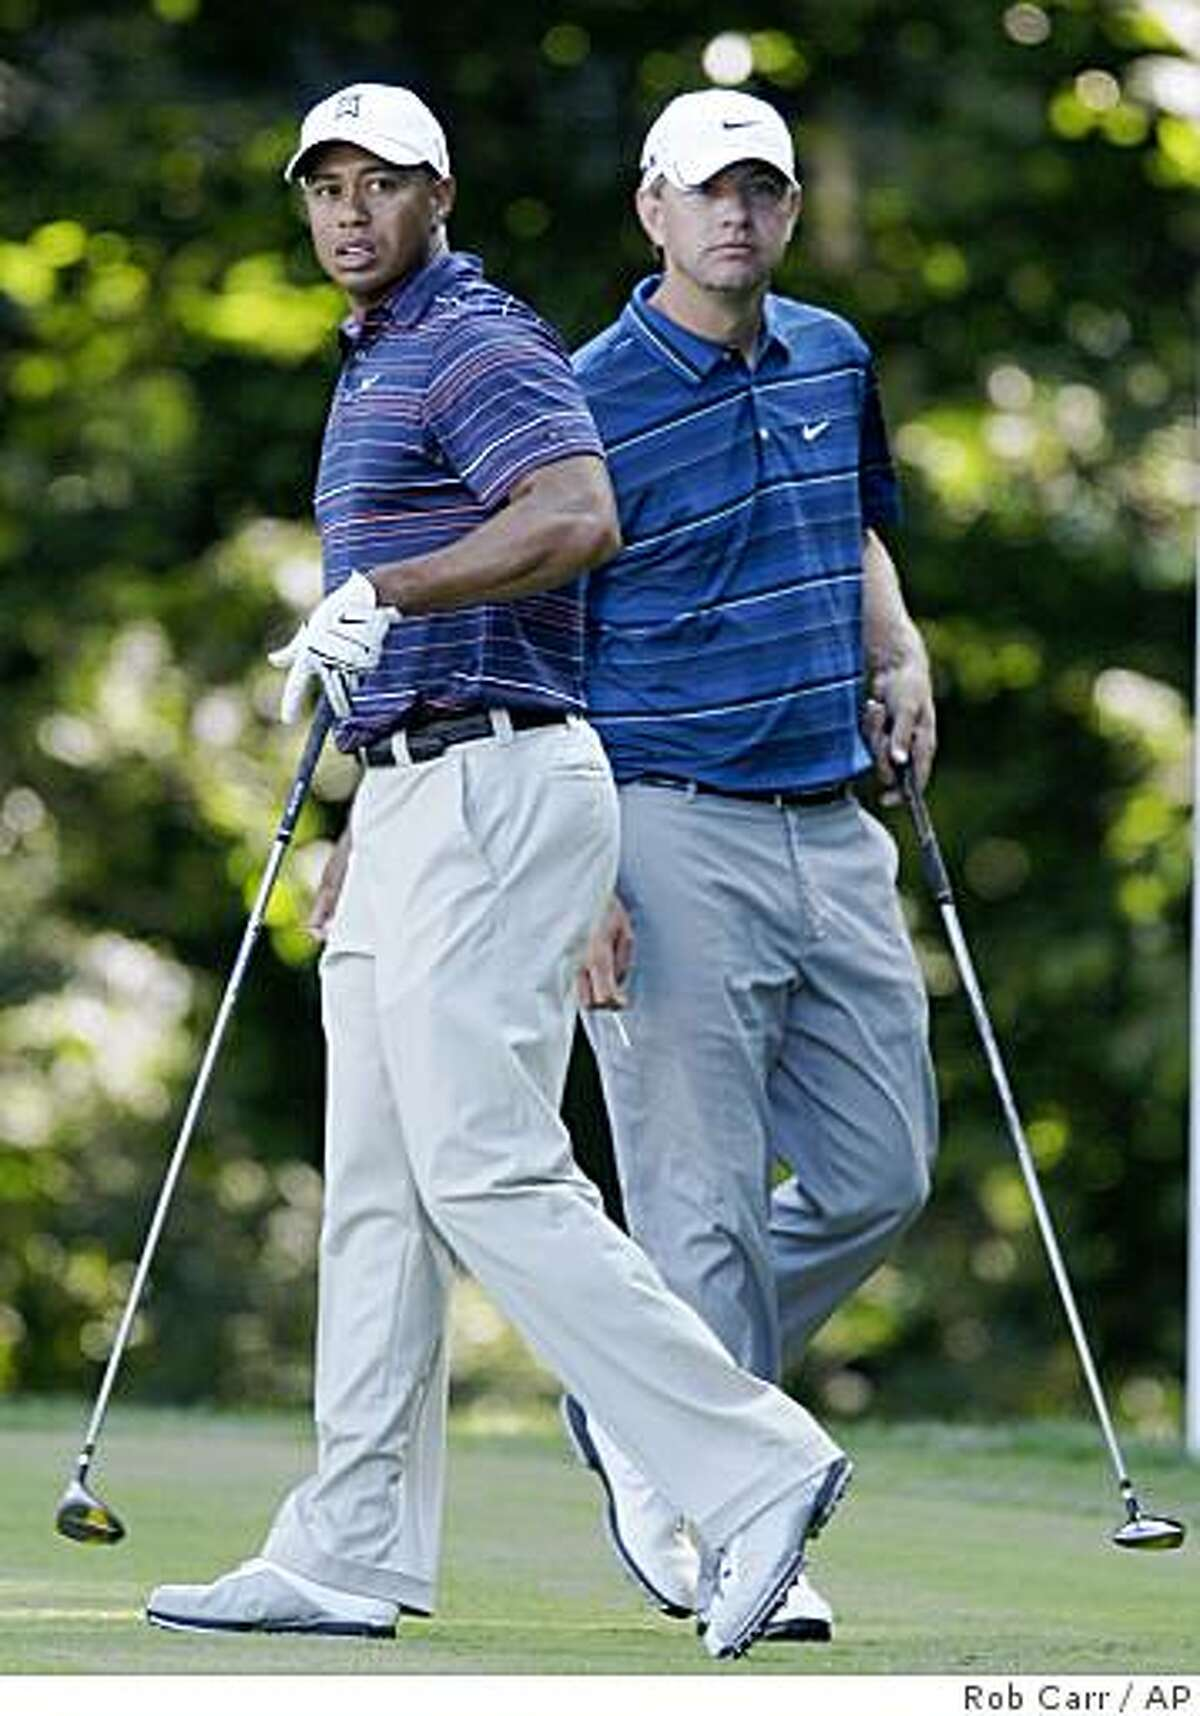 Tiger Woods, left, and Lucas Glover, right, follow Woods' tee shot on the 14th hole during the second round of the AT&T National golf tournament at Congressional Country Club, Friday, July 3, 2009, in Bethesda, Md. (AP Photo/Rob Carr)